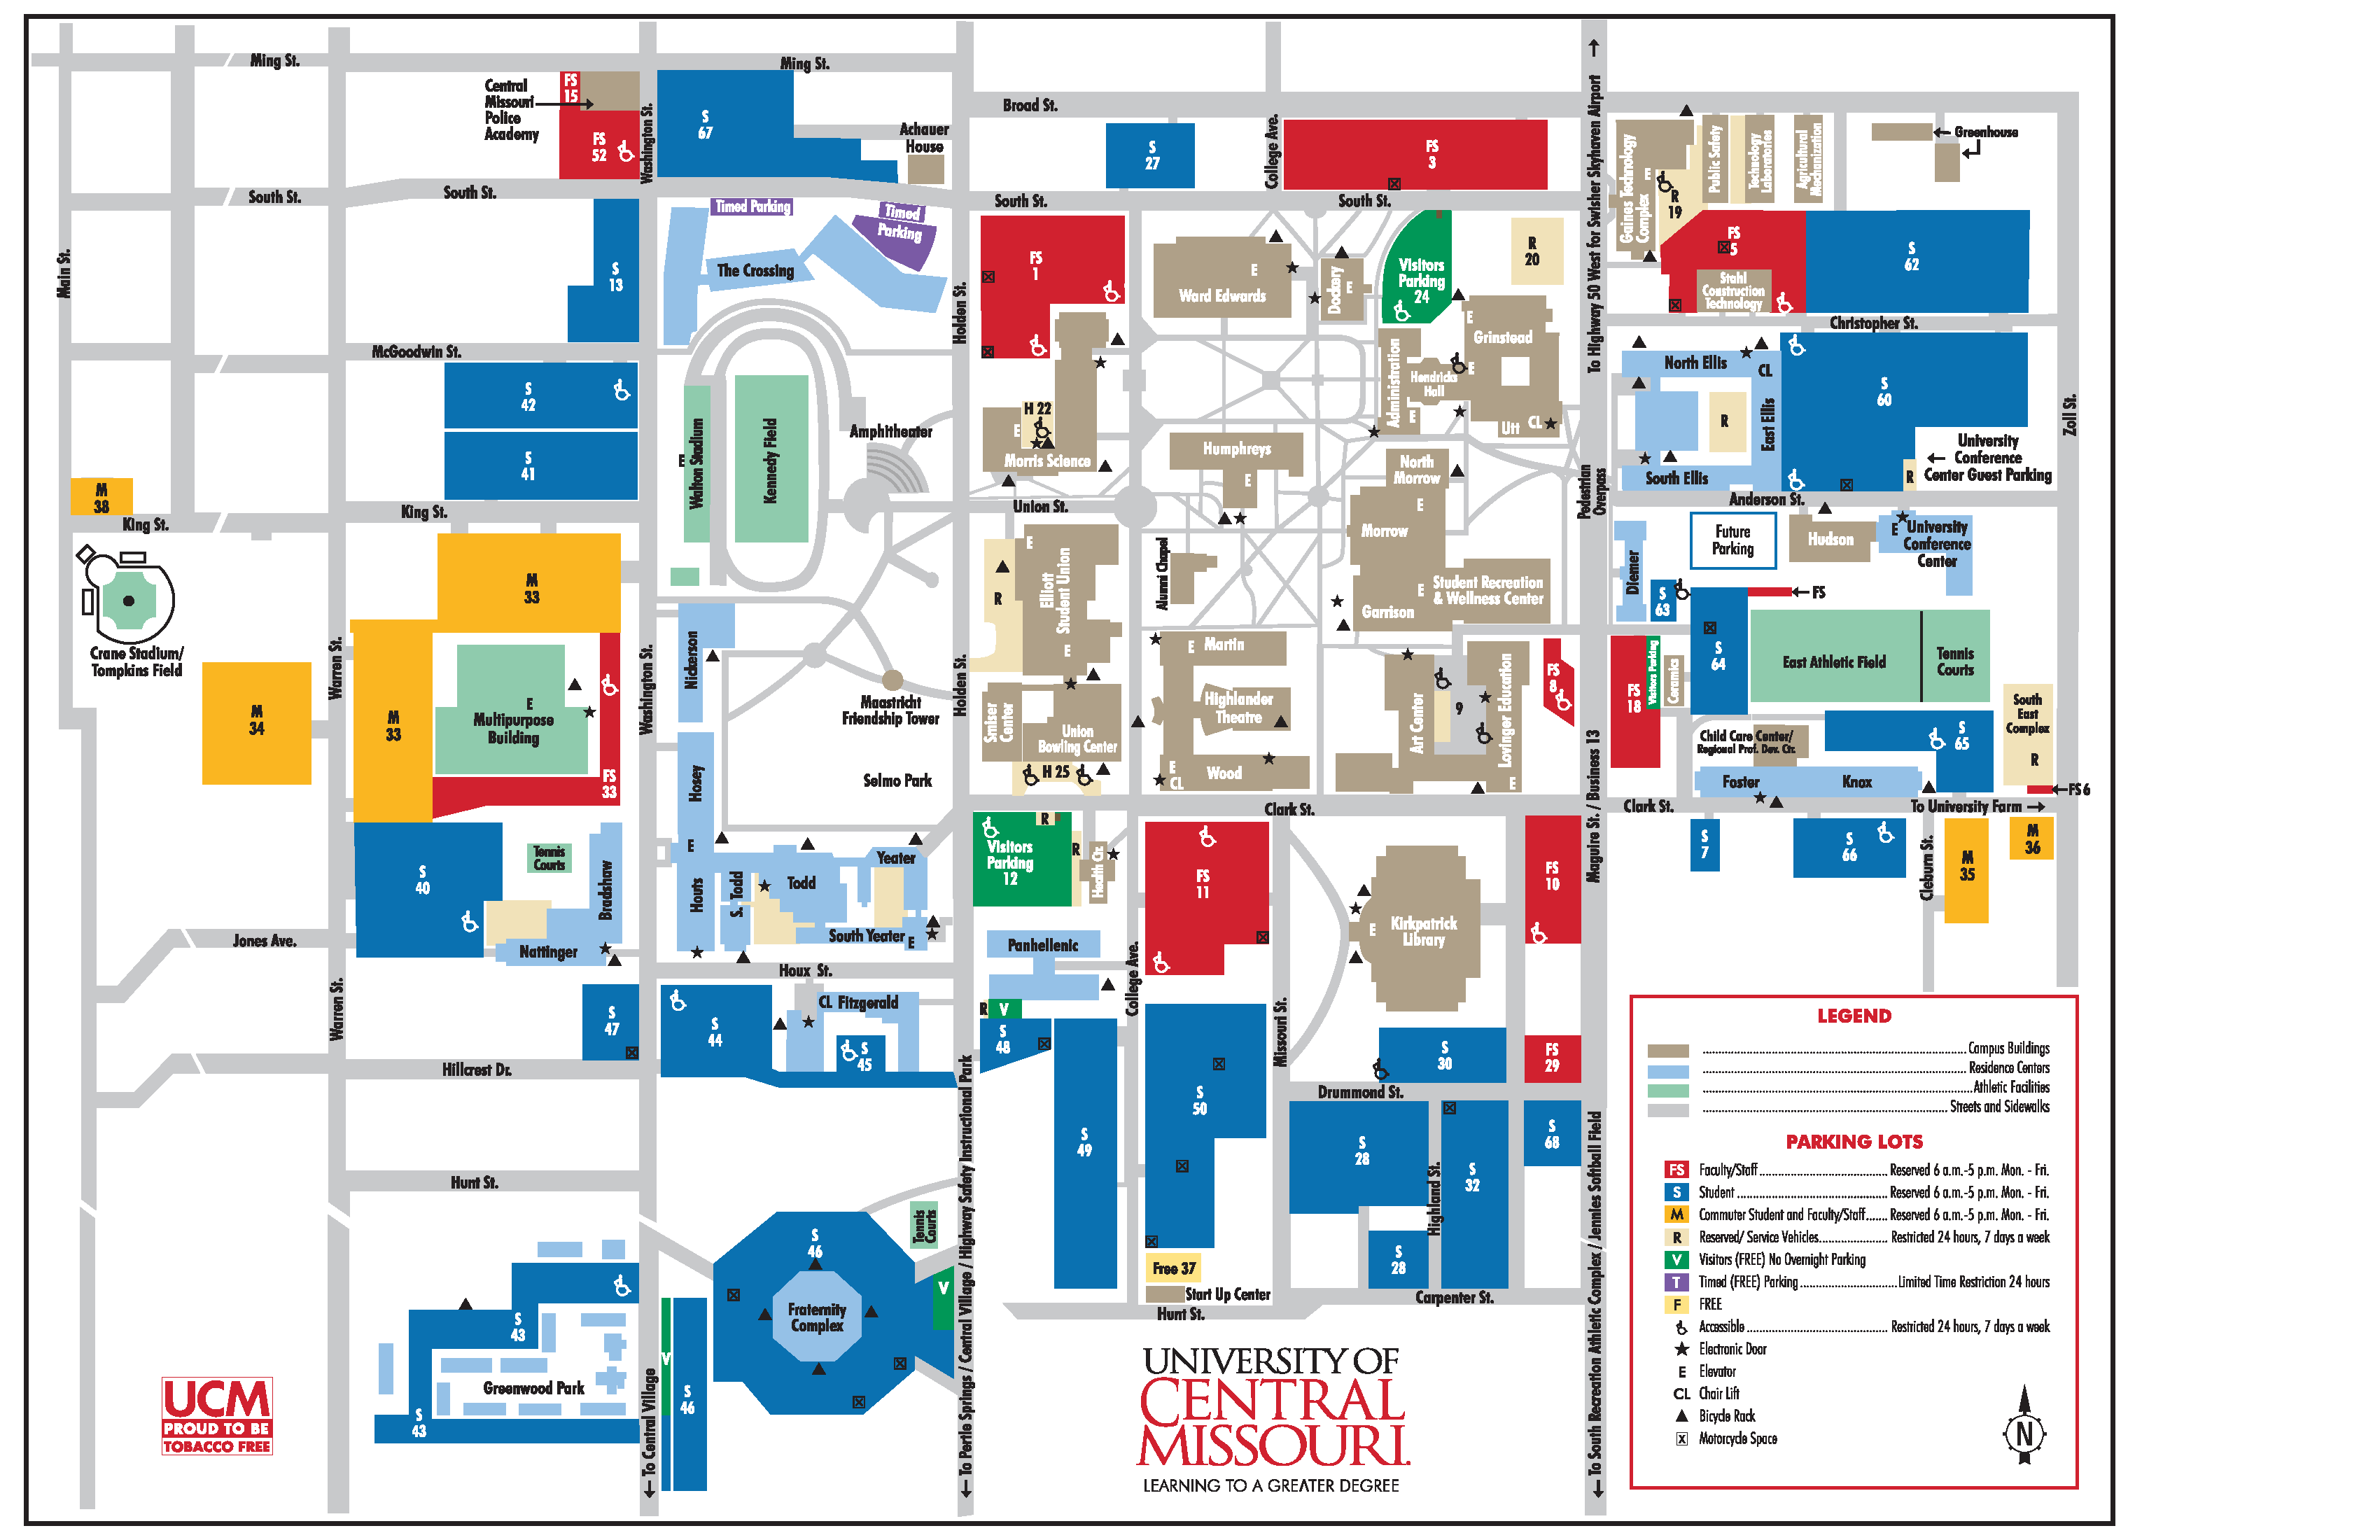 map of ucm campus Information Desk map of ucm campus